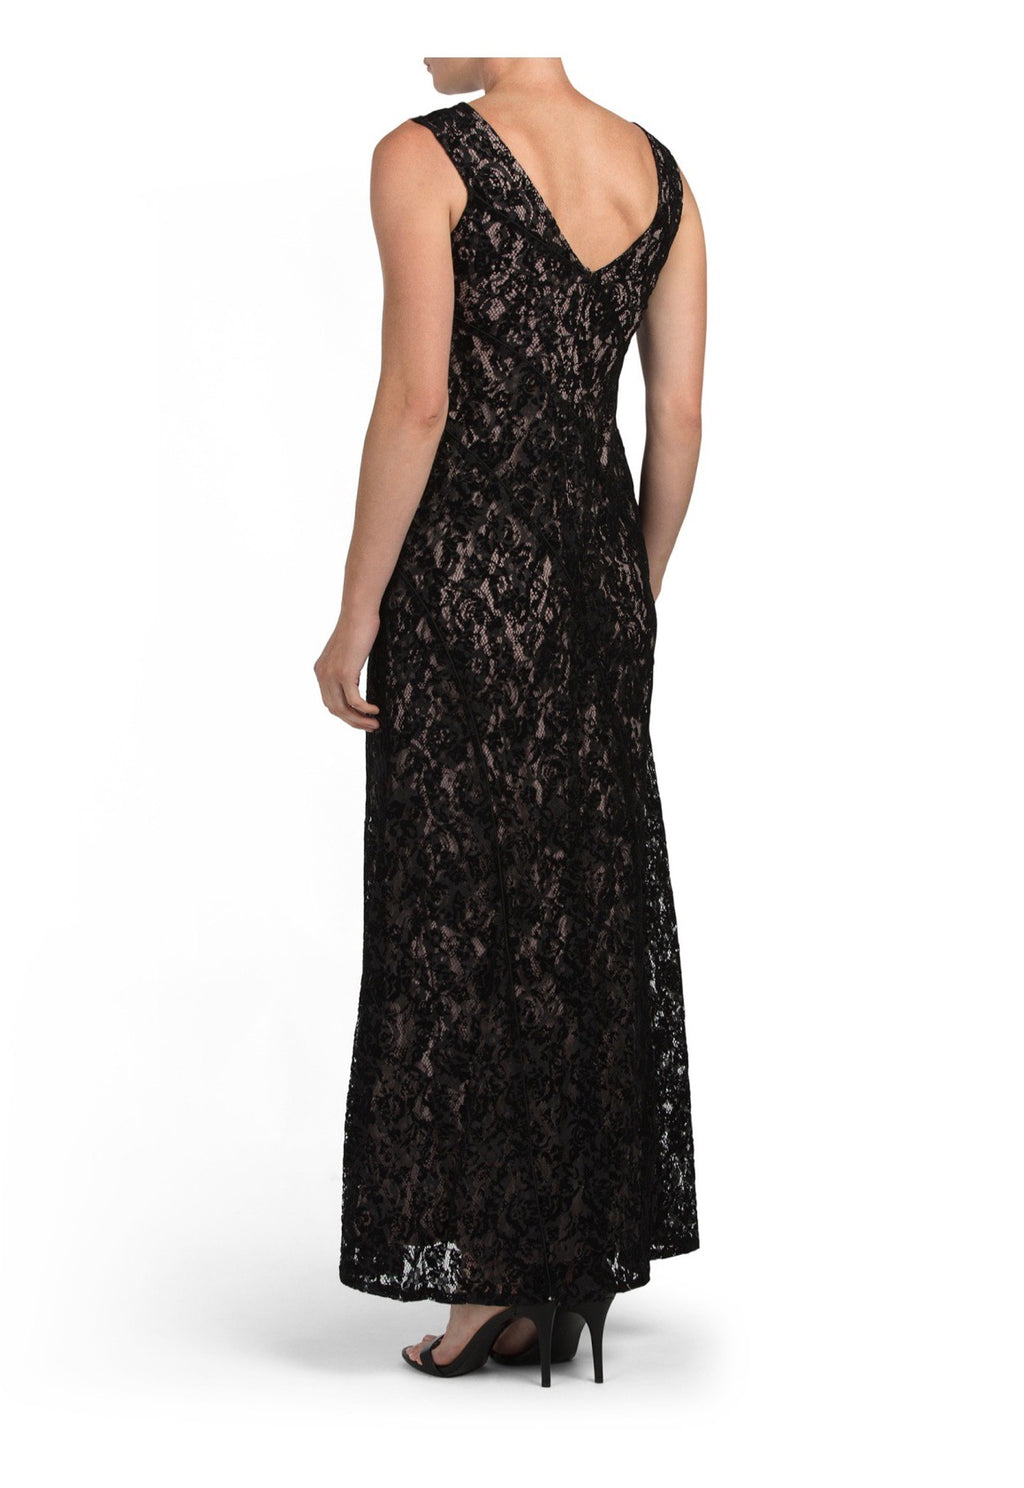 Lace Sleeveless Evening Dress - CYC Boutique